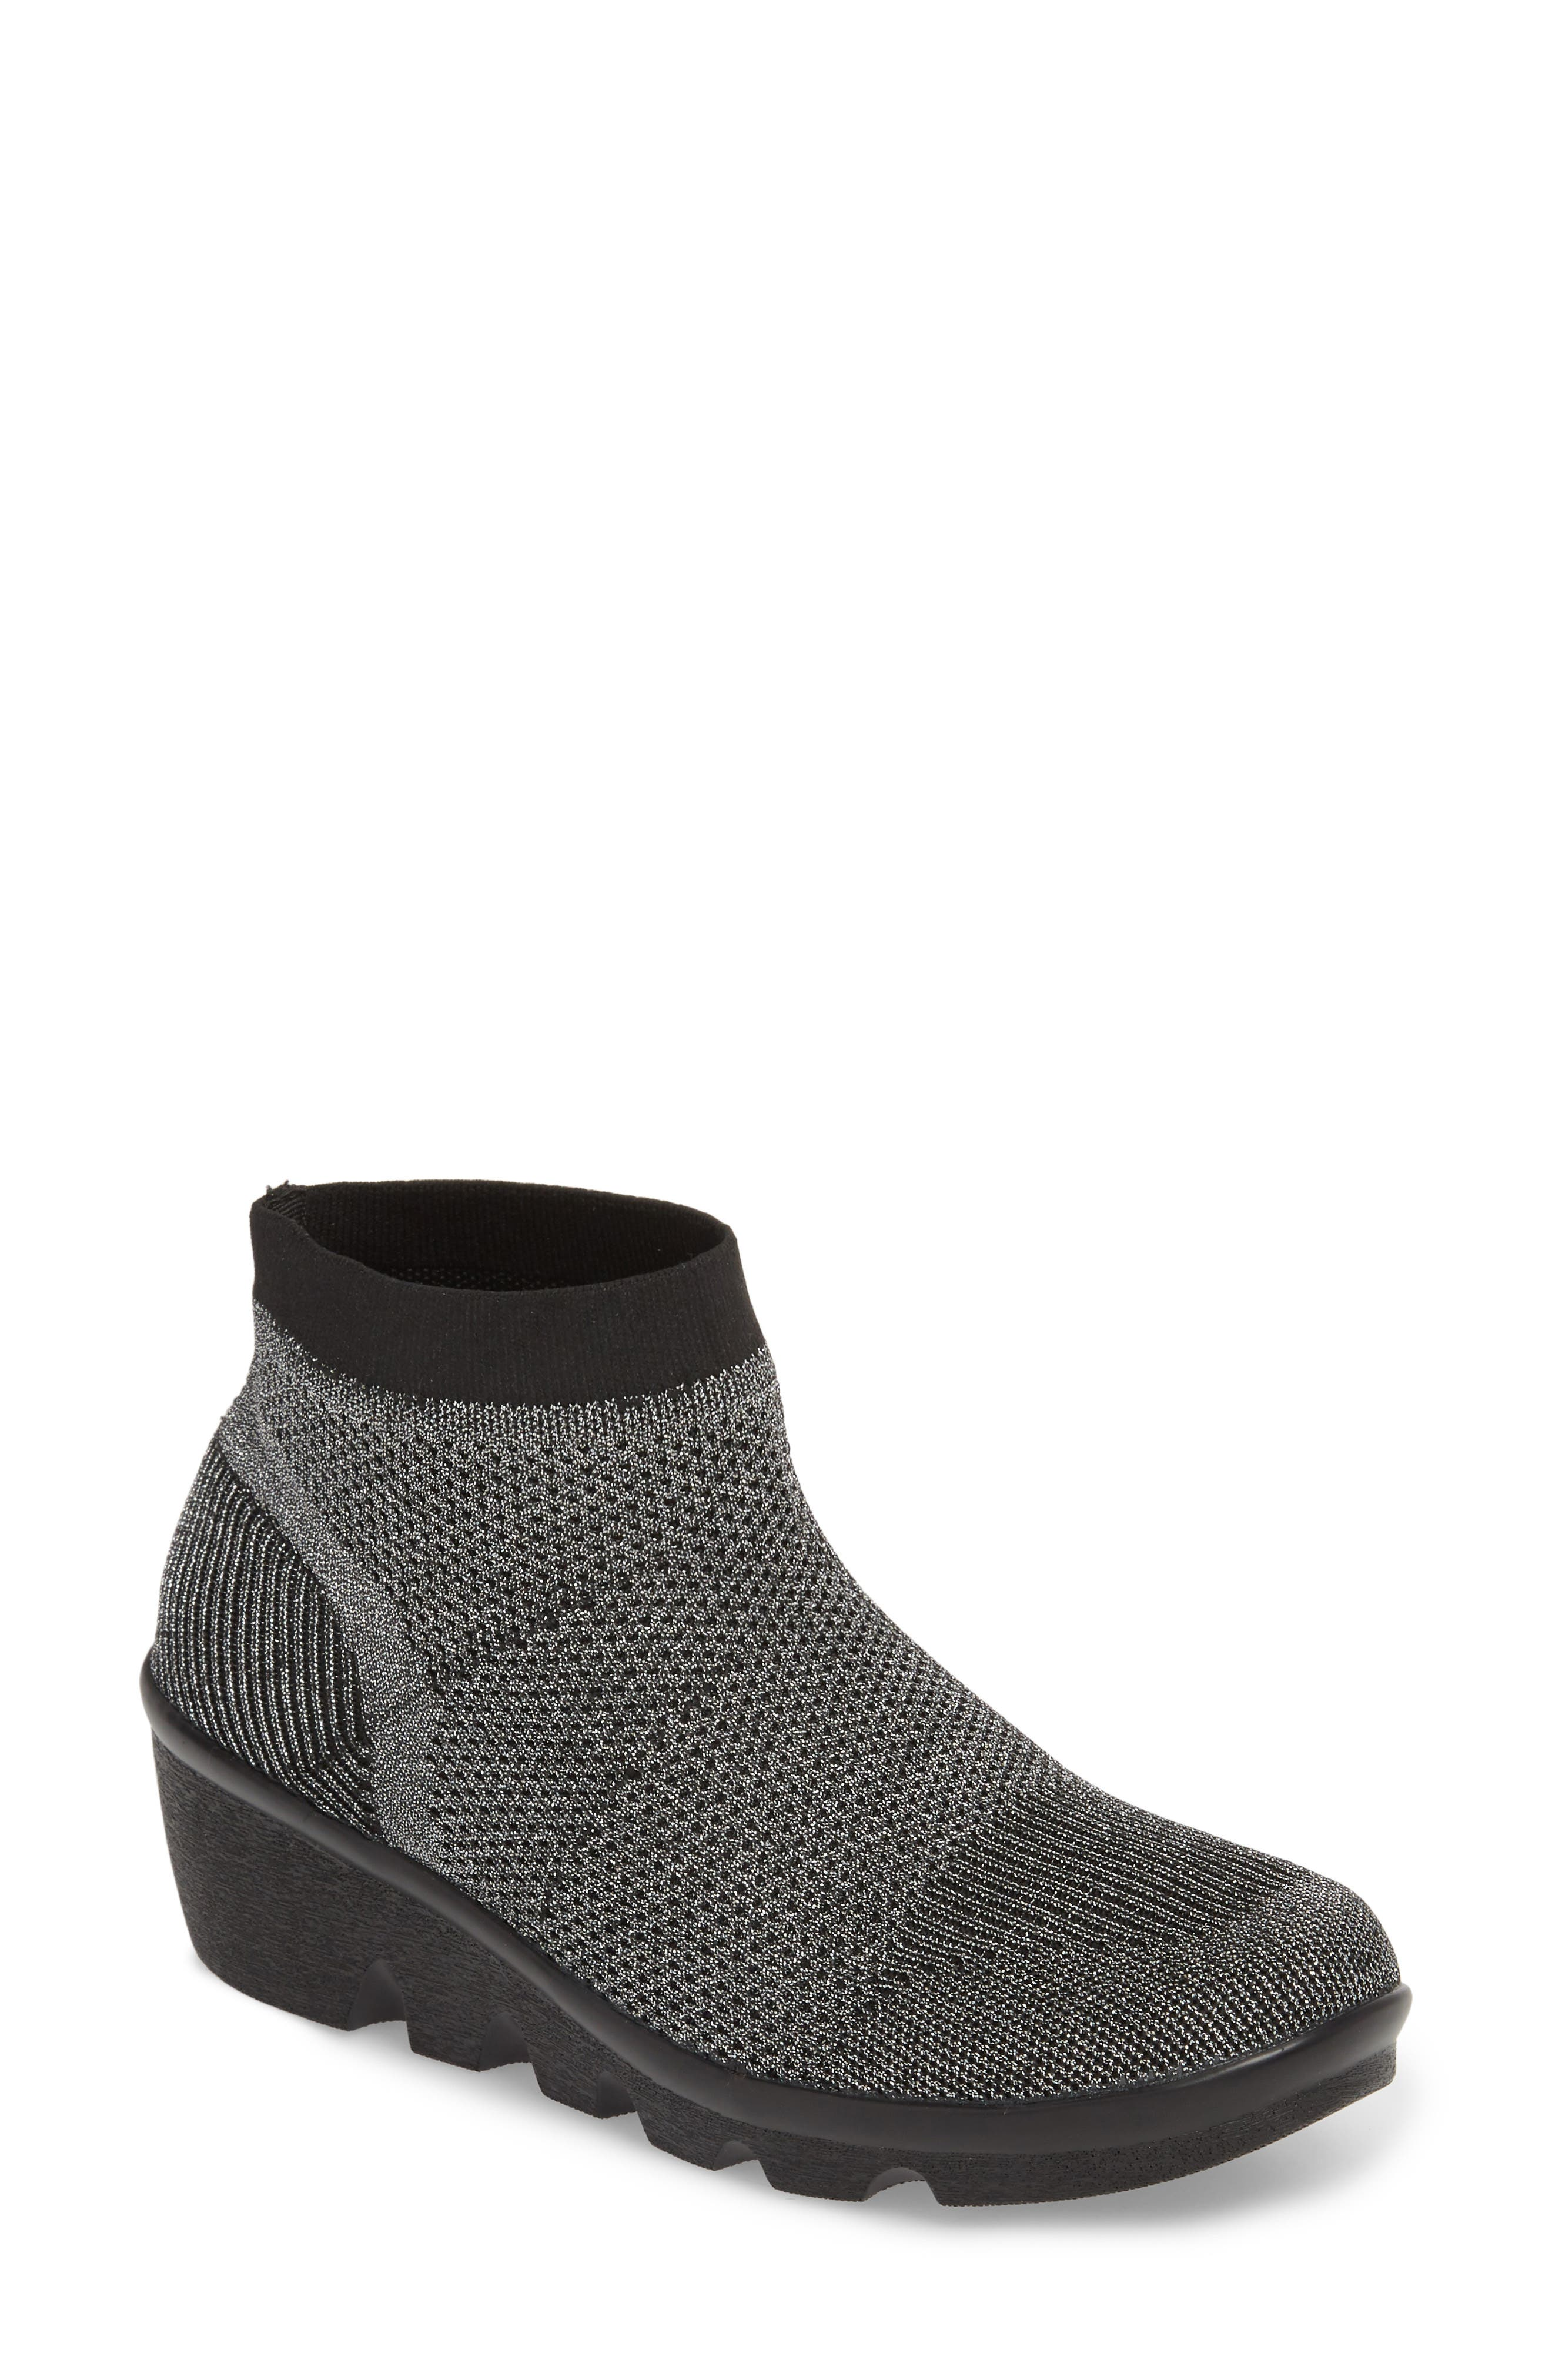 Camryn Knit Bootie, Main, color, GUNMETAL FABRIC